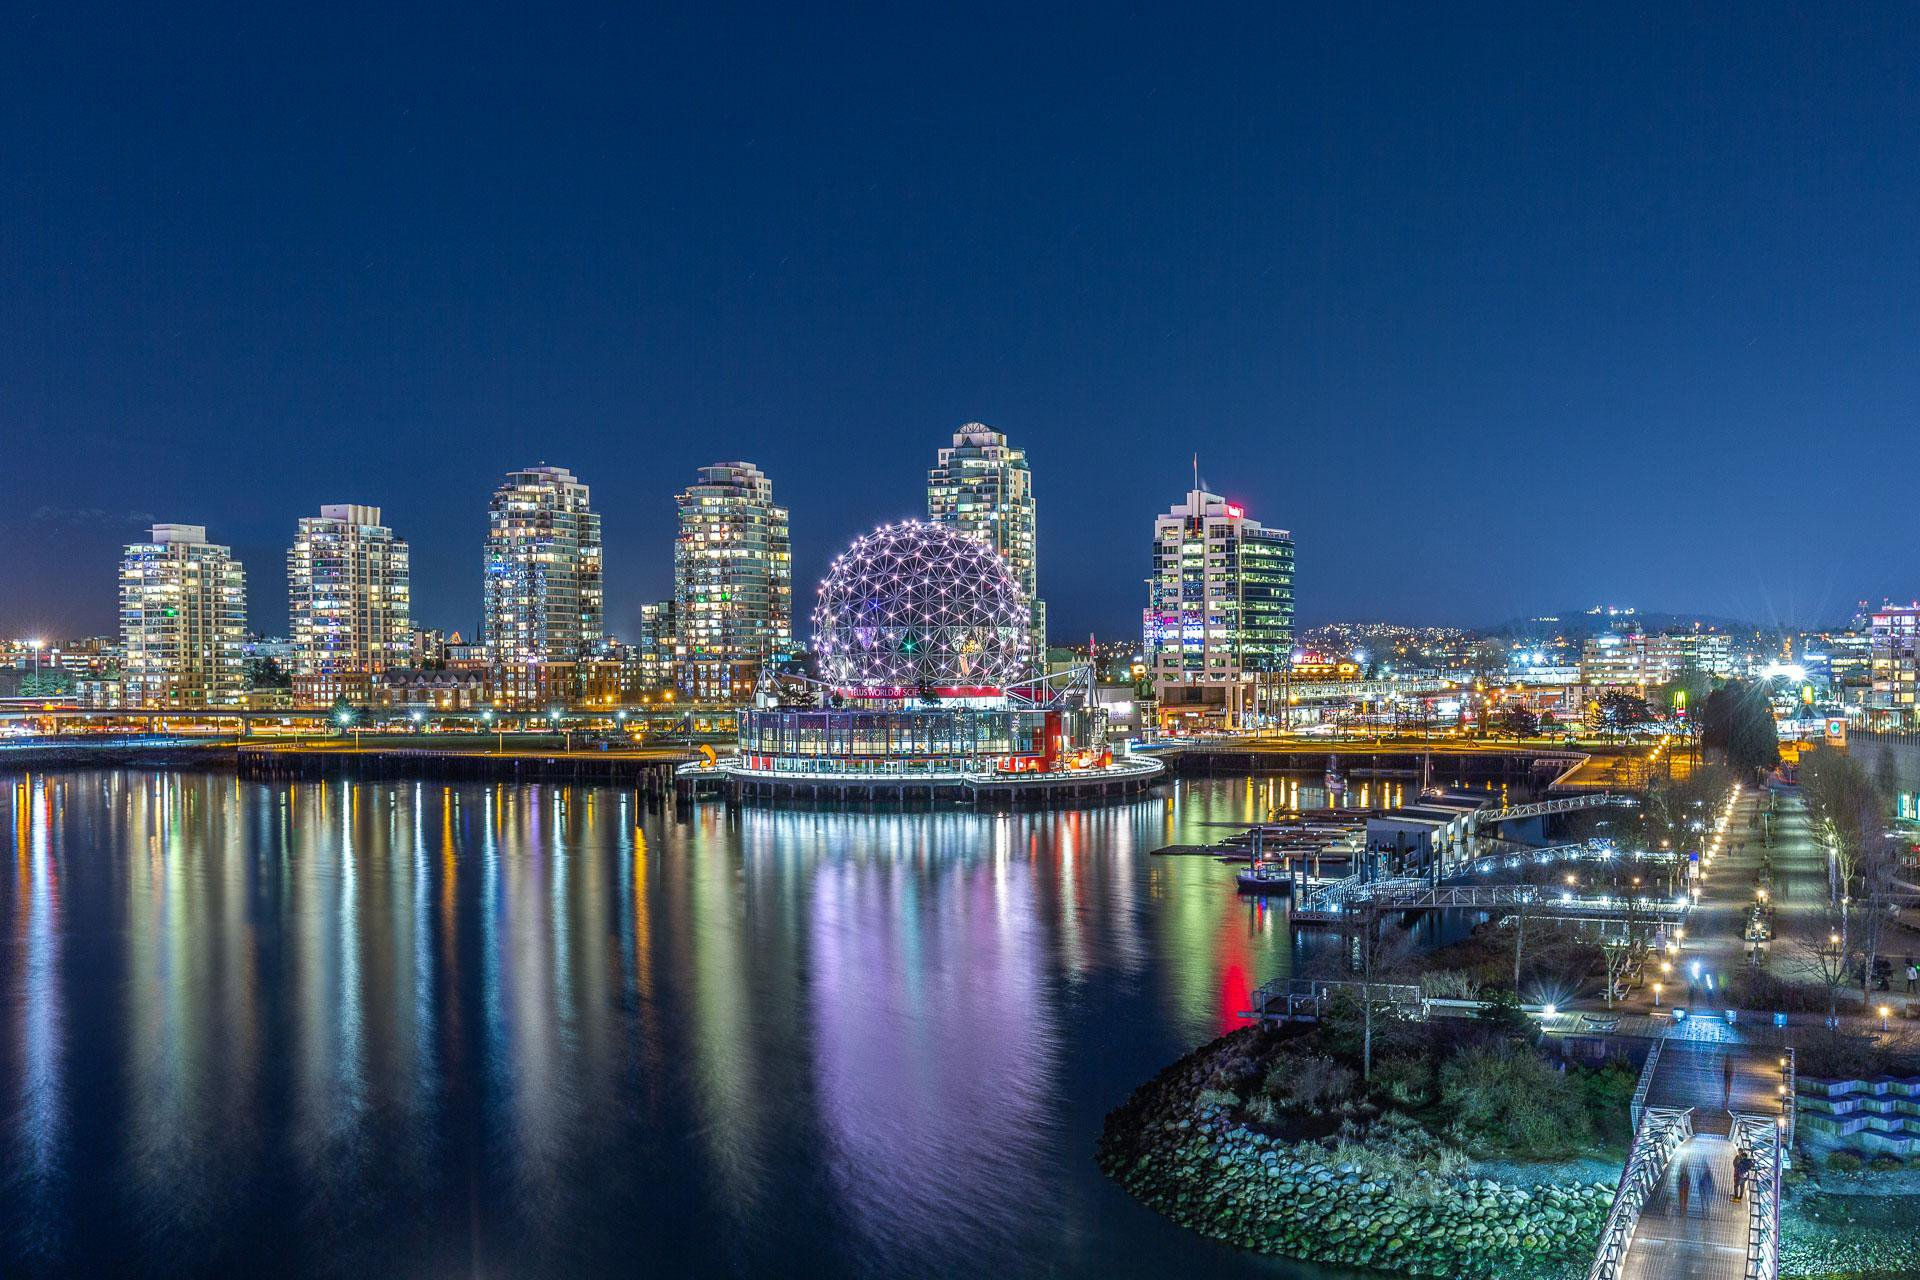 Main Photo: 602 151 Athletes Way in Vancouver: False Creek Condo for sale (Vancouver West)  : MLS®# R2352265